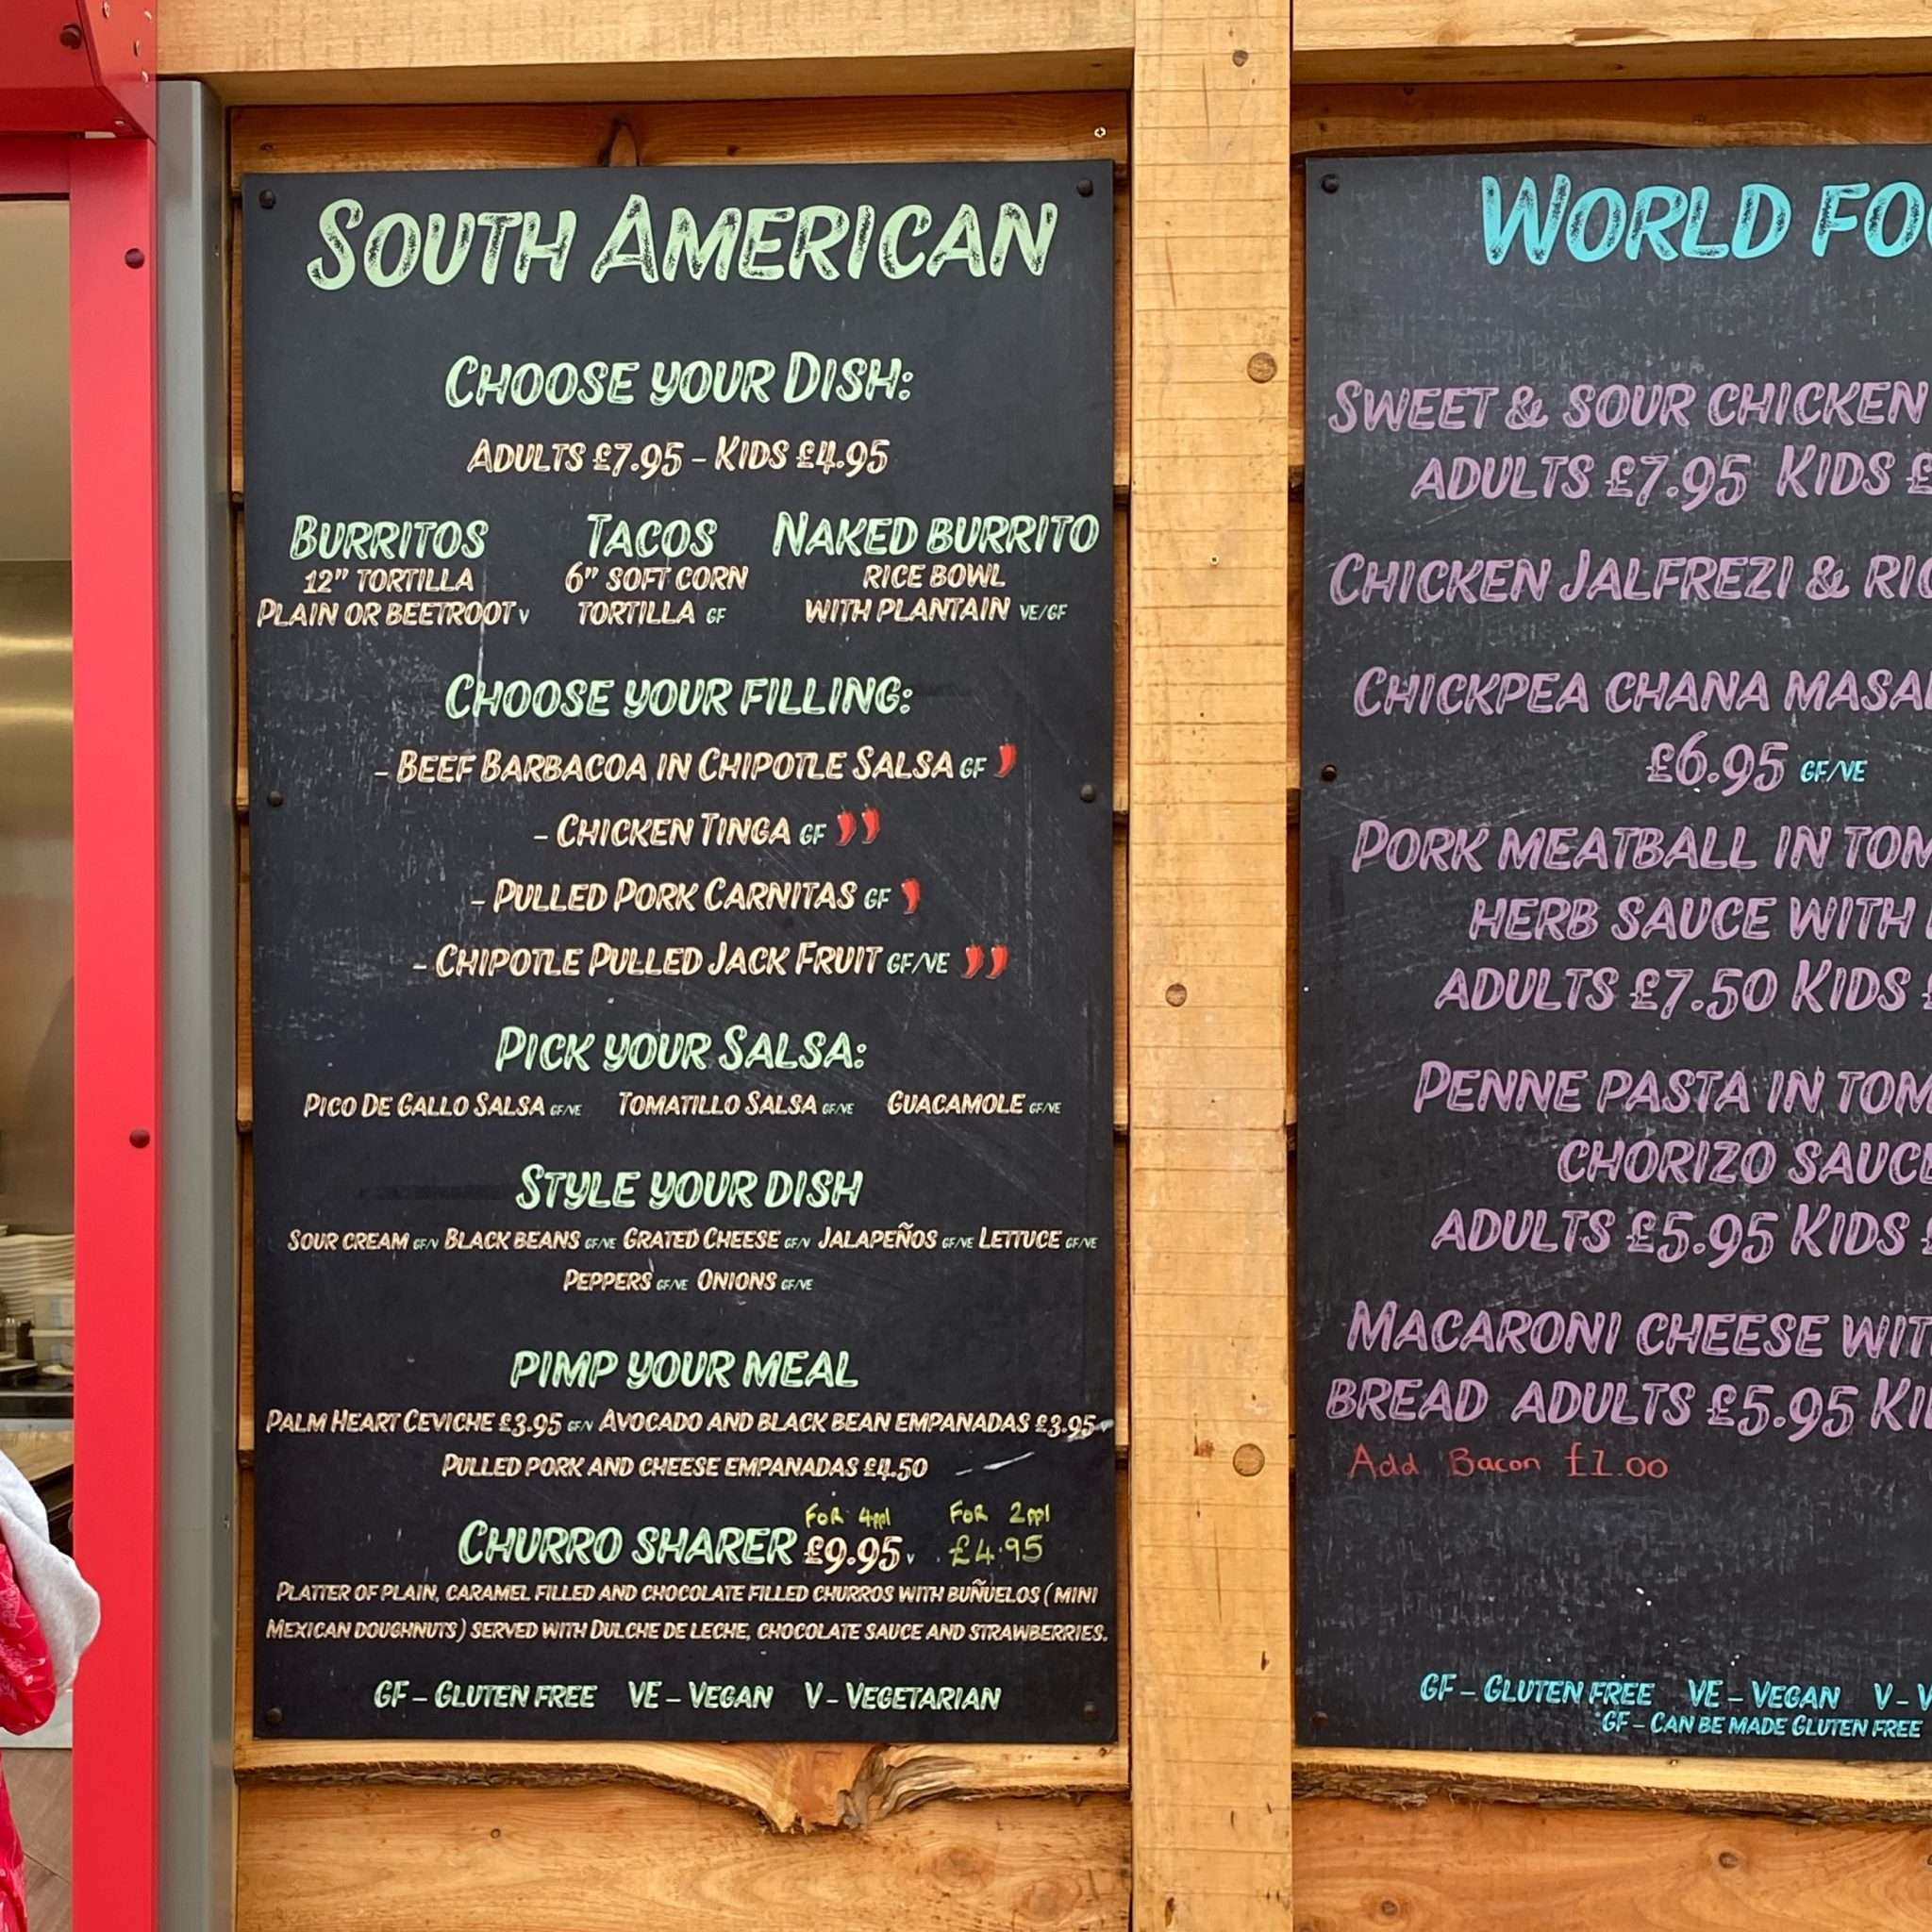 A menu showing South American dishes with gluten free options.